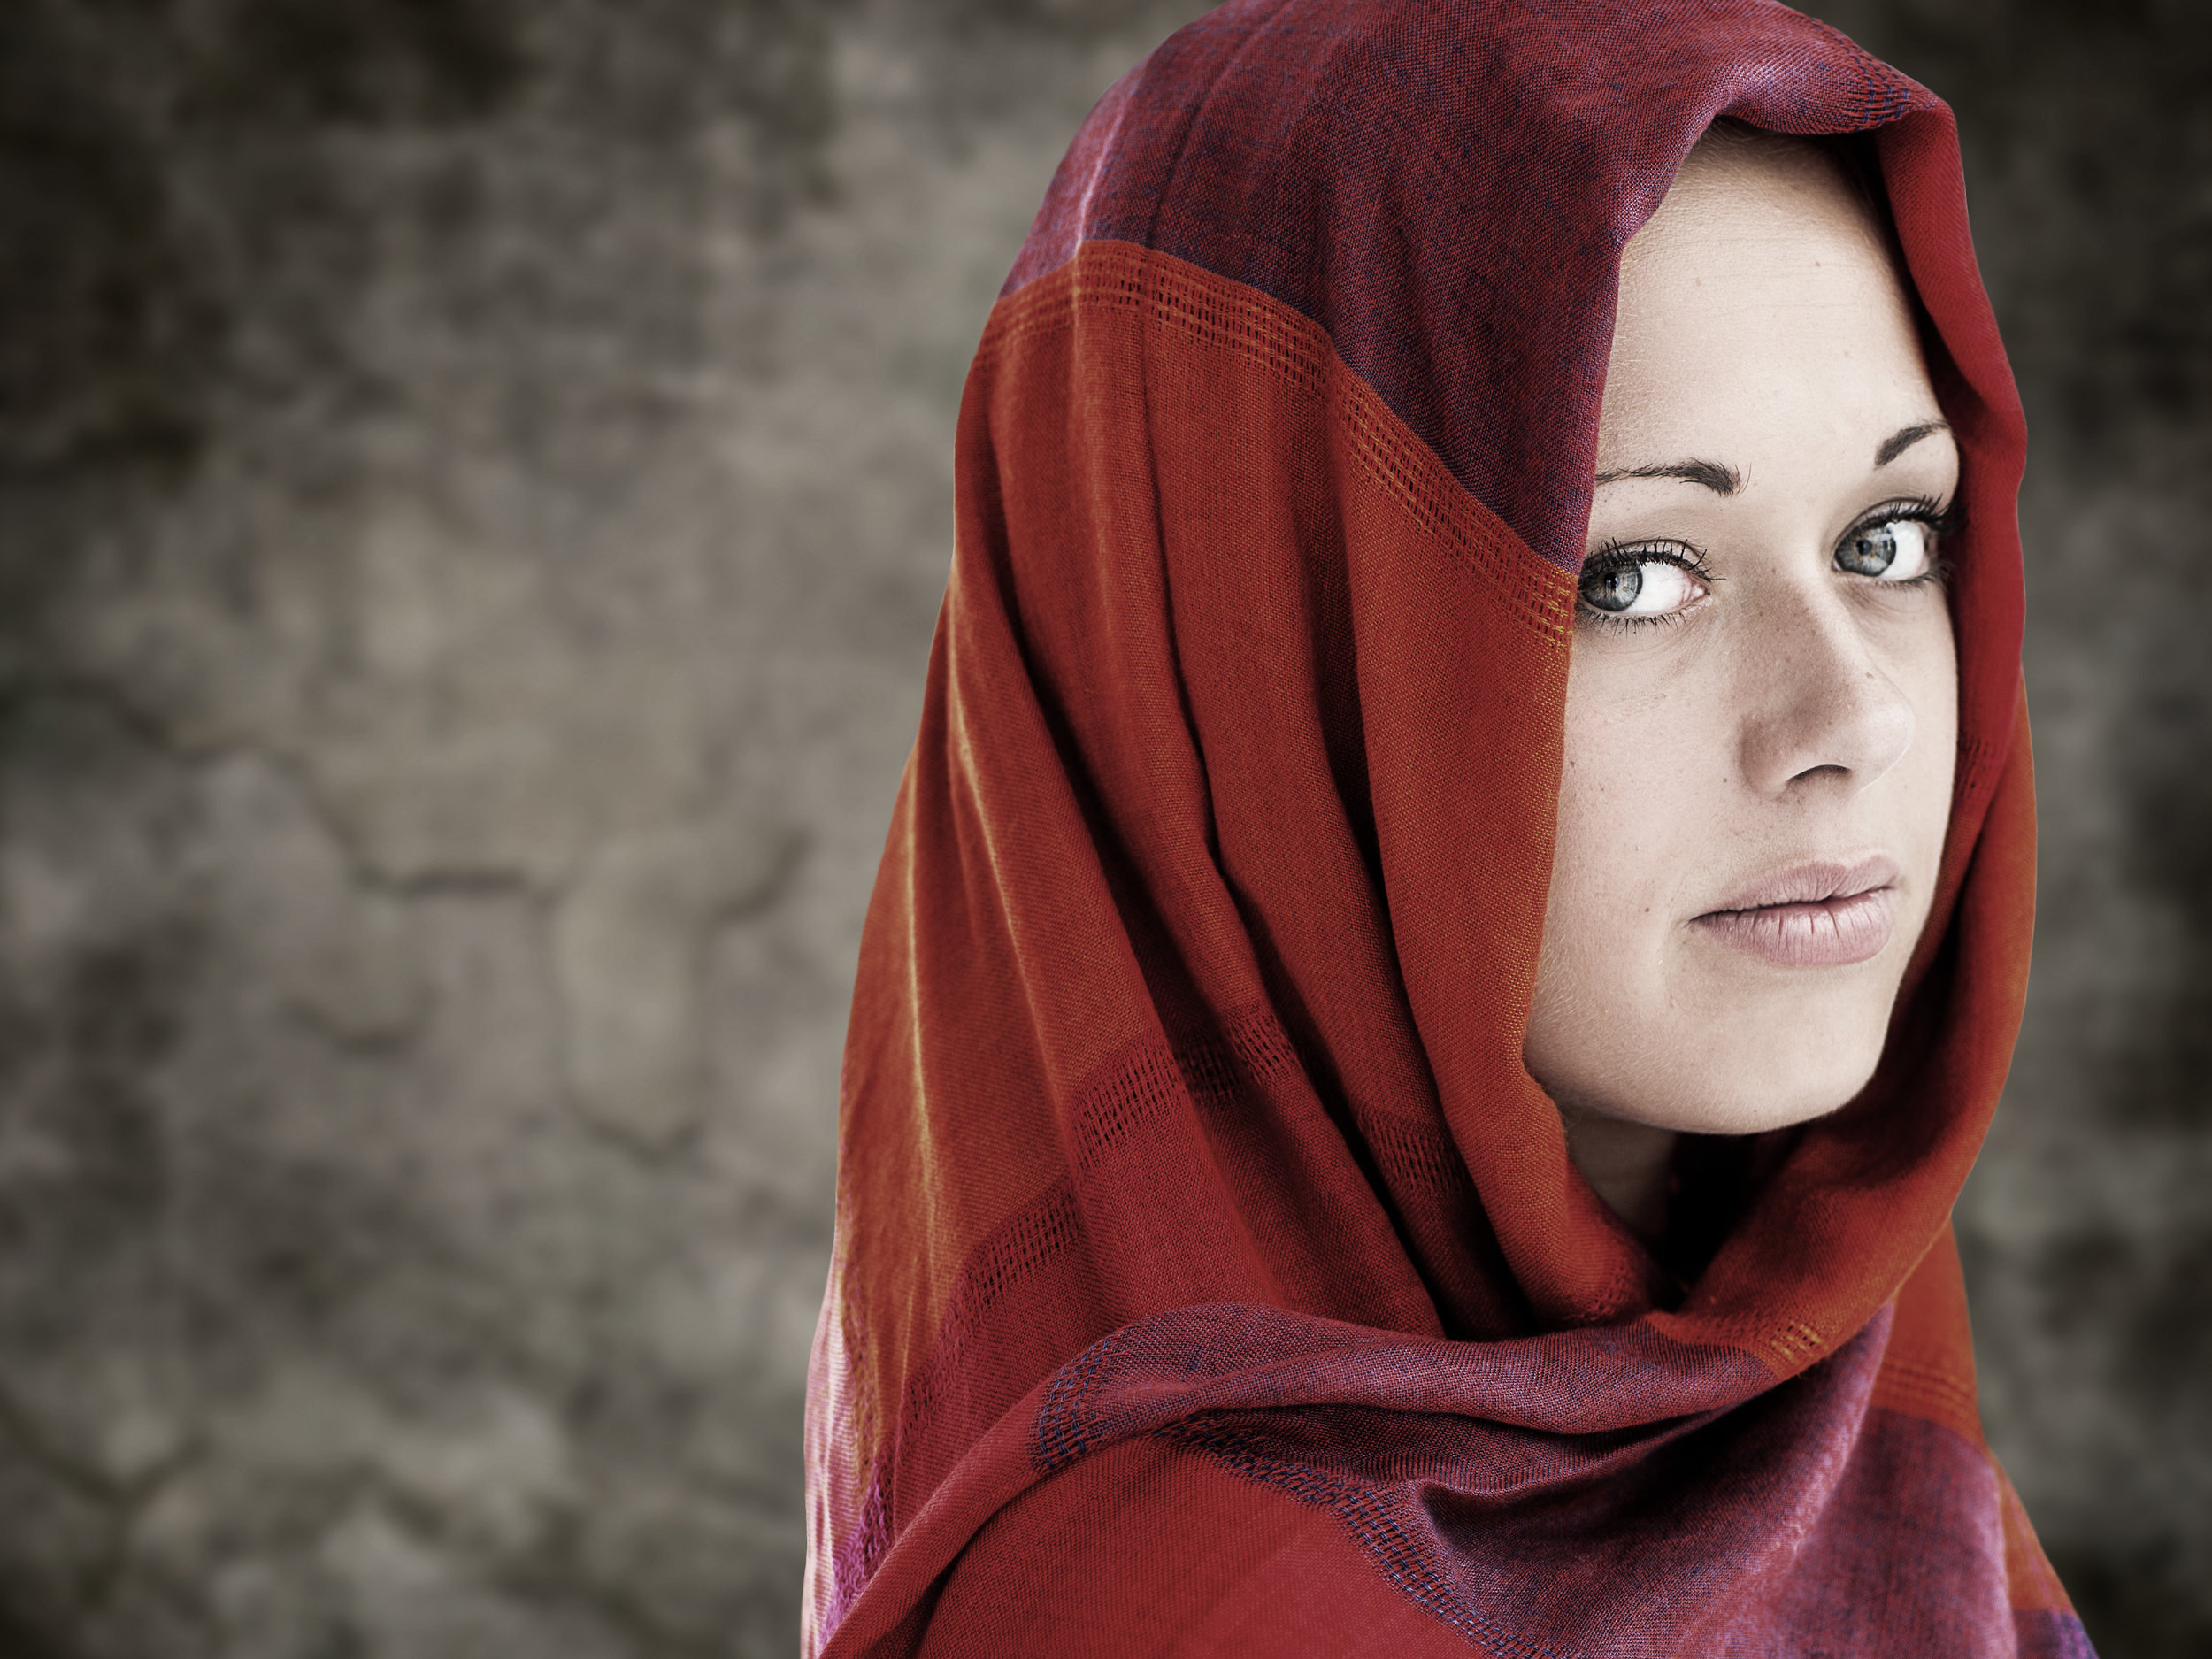 bigstock-Young-Arabic-woman-in-wearing--46804516.jpg